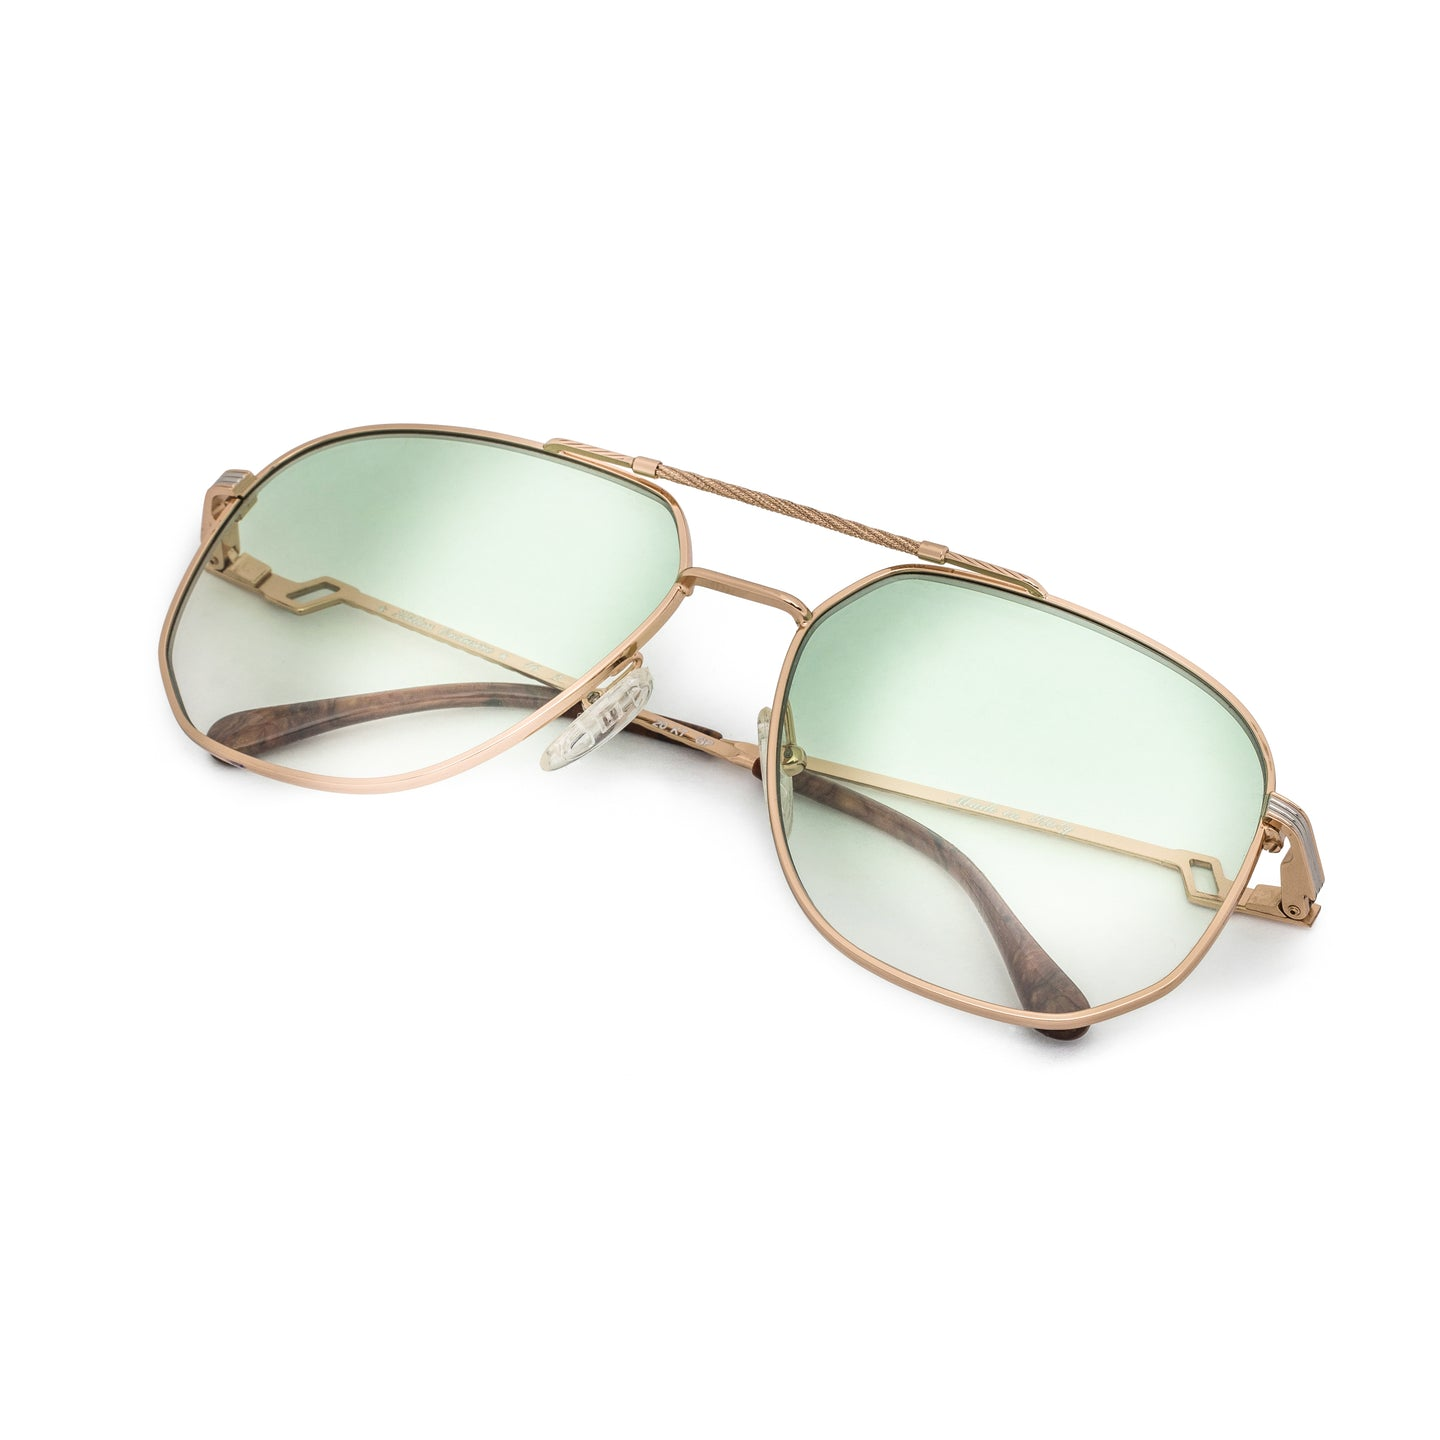 Vintage Hilton Exclusive 14 2 (Pastel Green) Thumbnail, Hilton , glasses frames, eyeglasses online, eyeglass frames, mens glasses, womens glasses, buy glasses online, designer eyeglasses, vintage sunglasses, retro sunglasses, vintage glasses, sunglass, eyeglass, glasses, lens, vintage frames company, vf